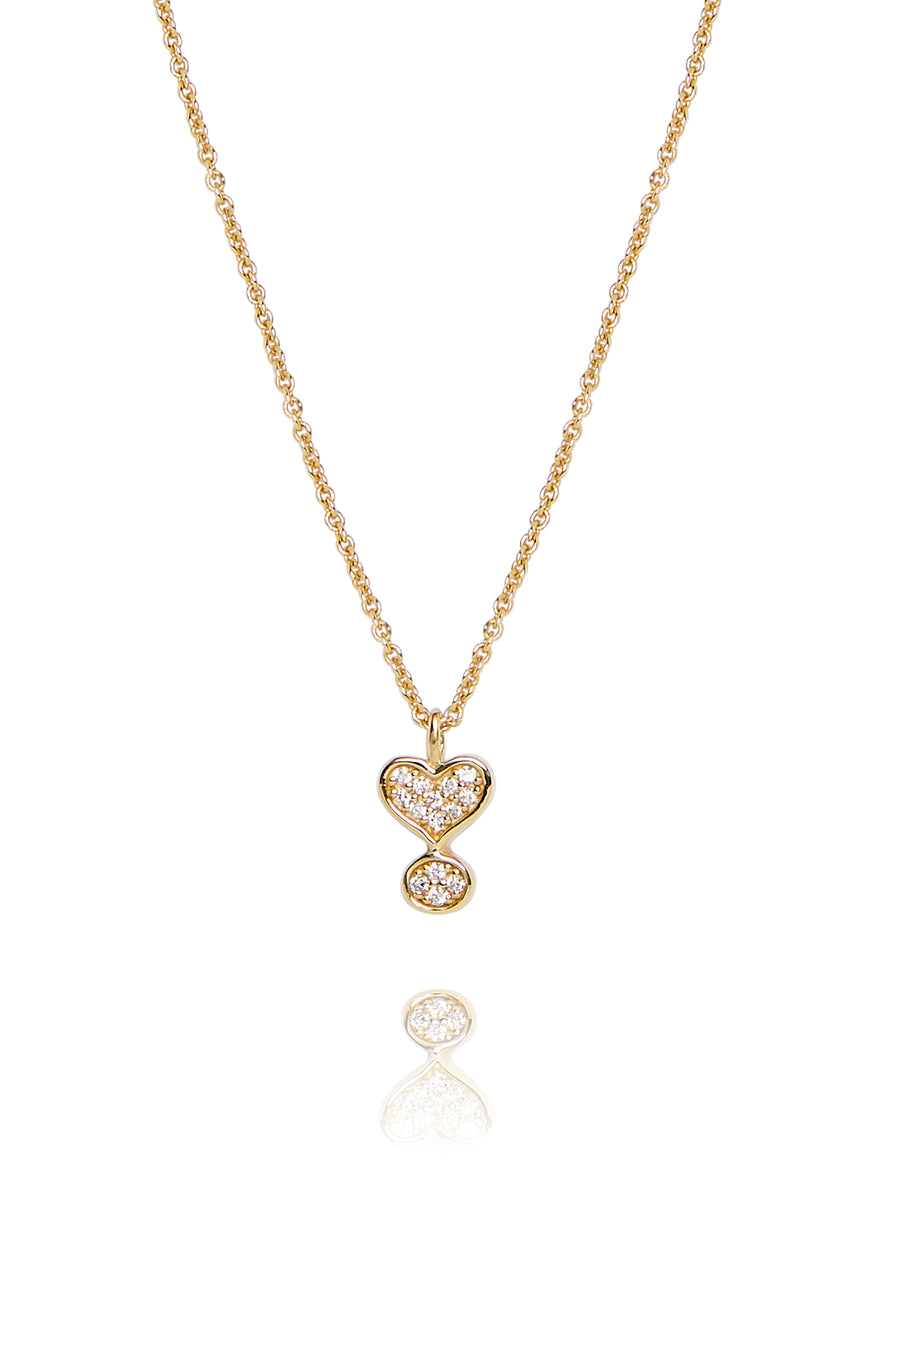 Lark & Berry's Exclamation Diamond Pave Pendant with 14K yellow gold and lab-created diamonds.